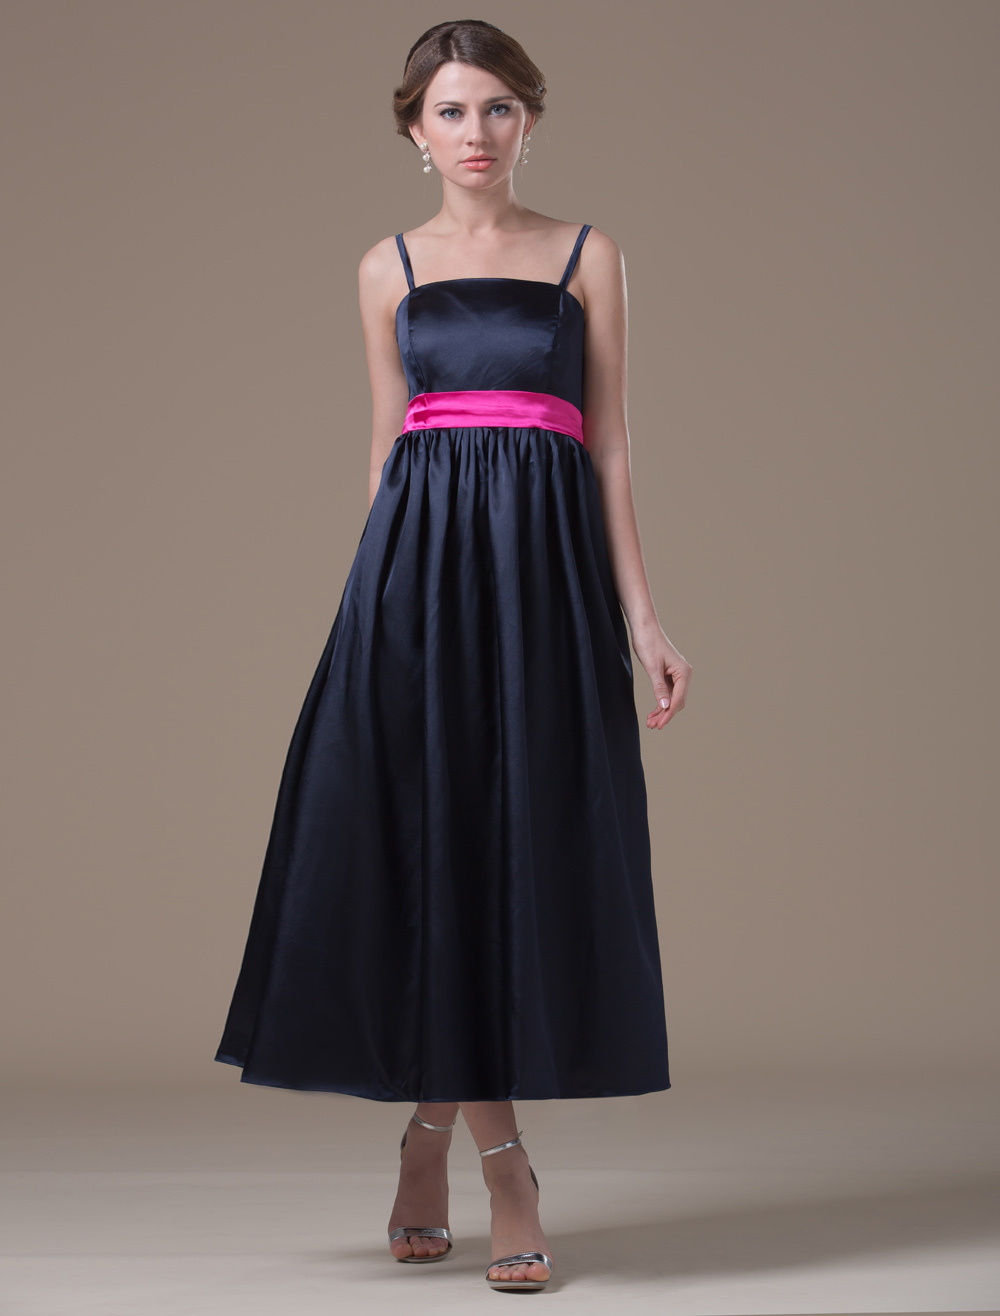 A-line Black Elastic Woven Satin Maternity Bridesmaid Dress with Spaghetti Straps Empire Waist